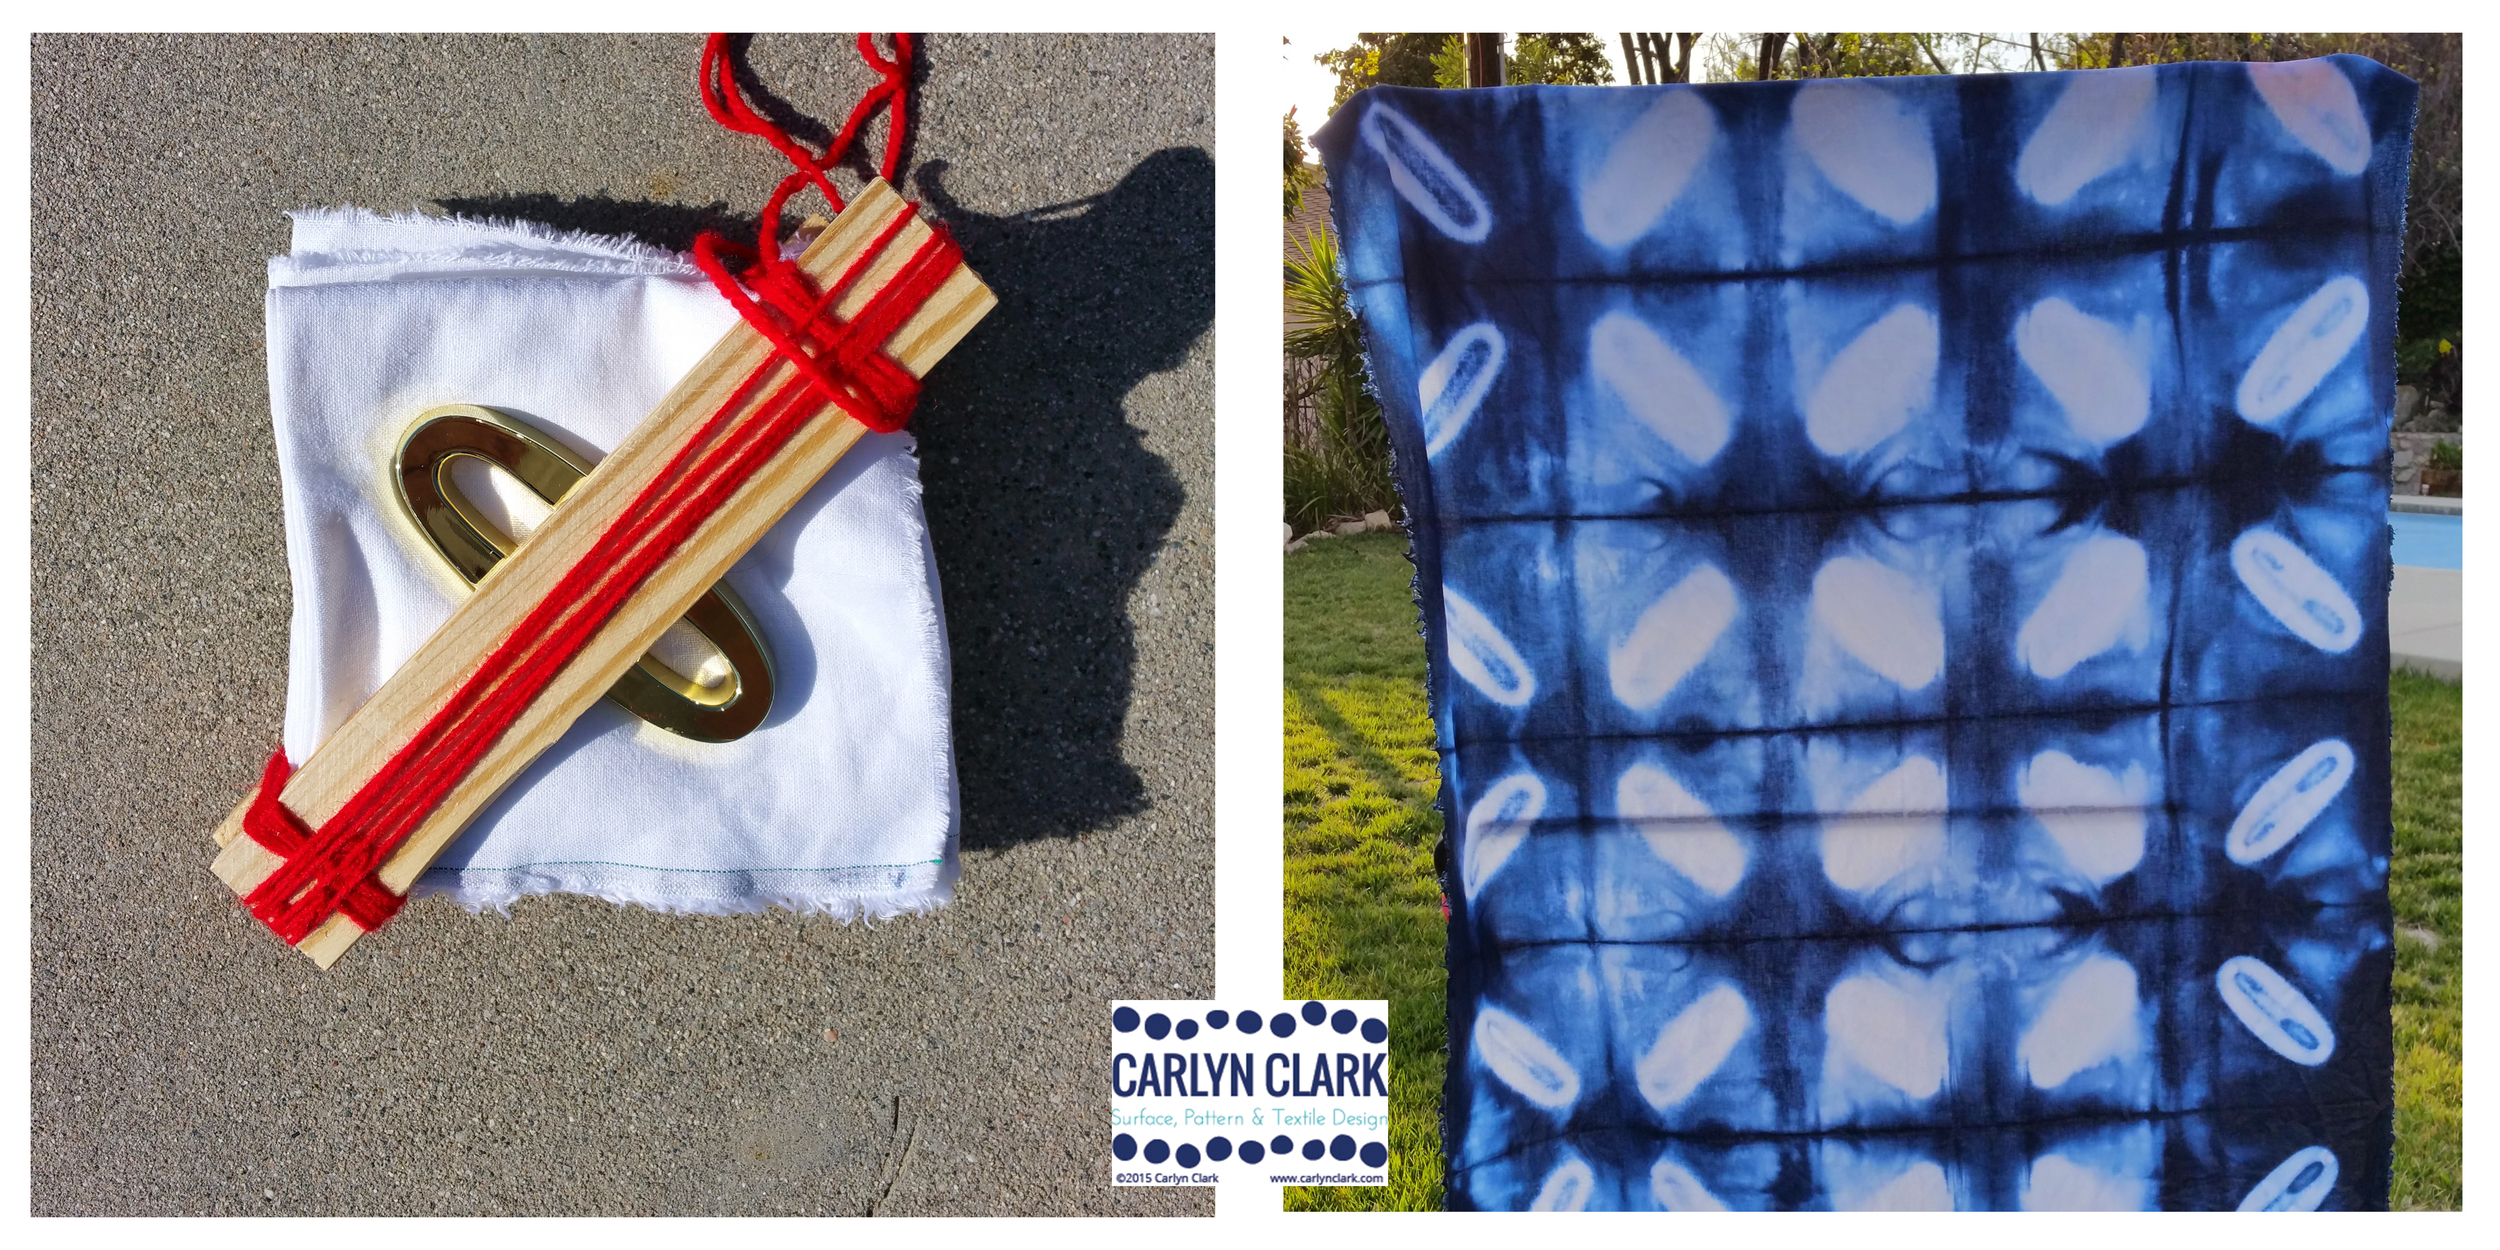 Carlyn Clark's second try at Shibori folding and dyeing.#3, Linen